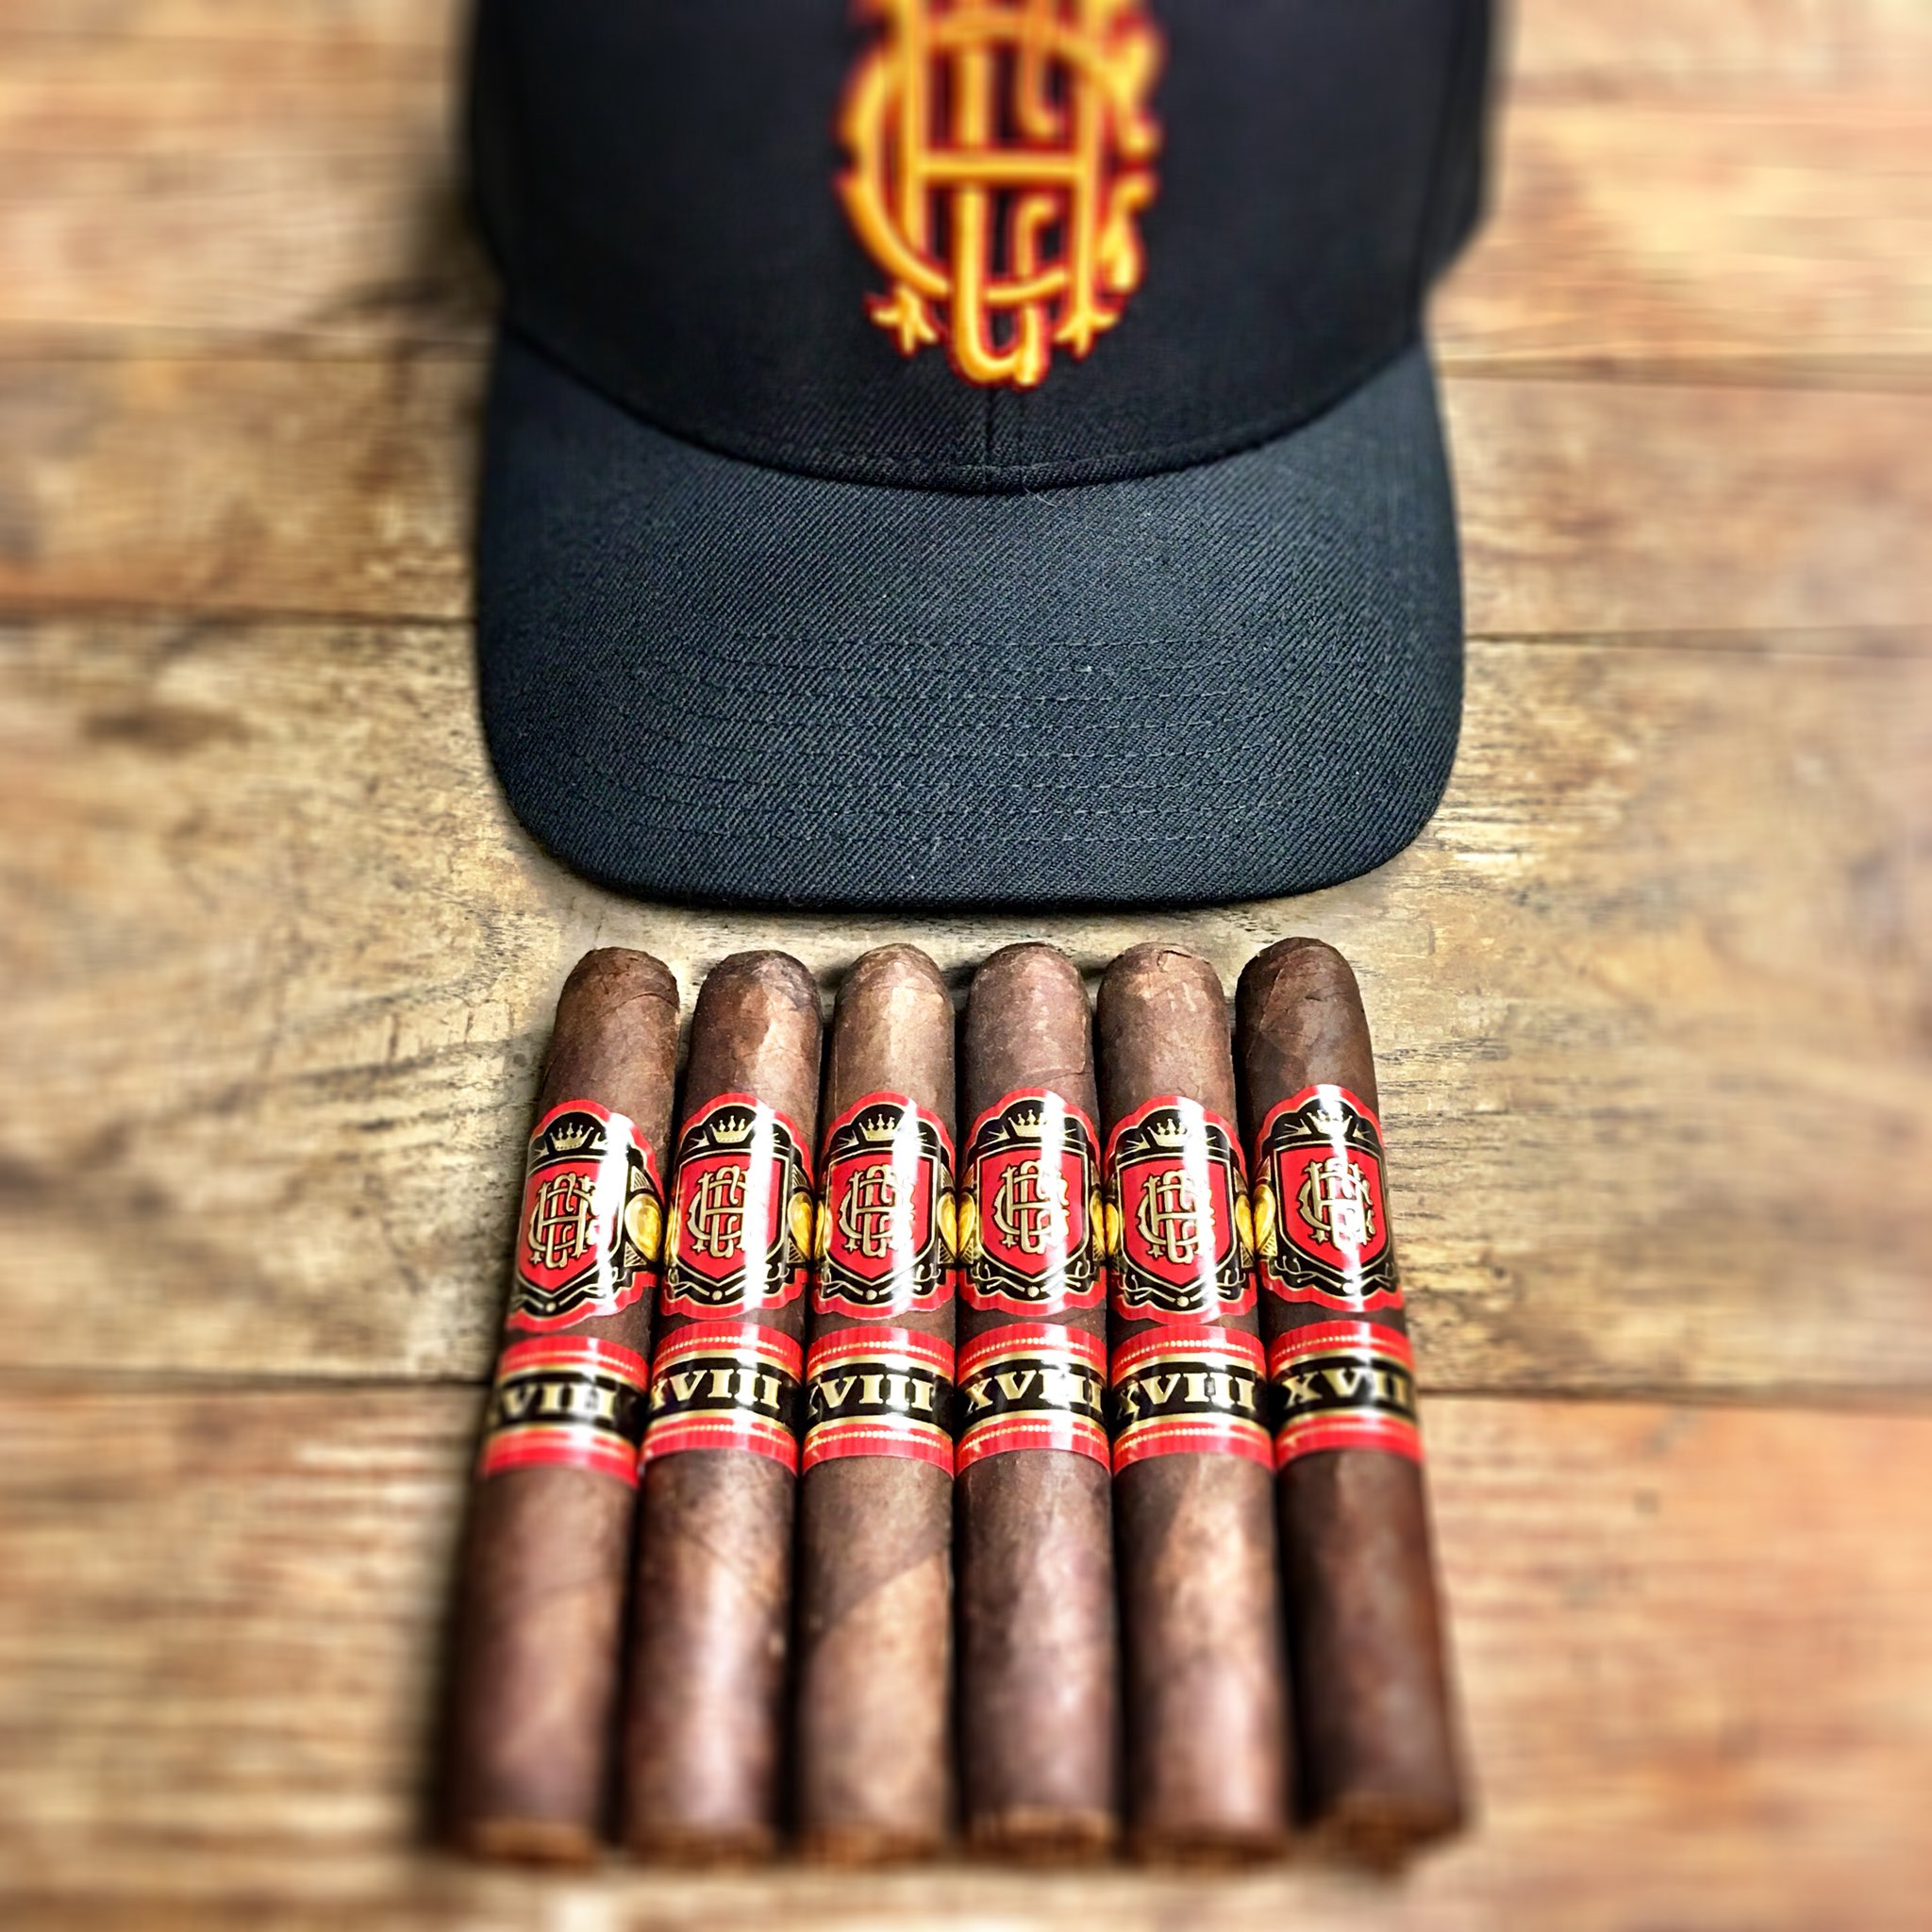 Crowned Heads Announces Court Reserve XVIII